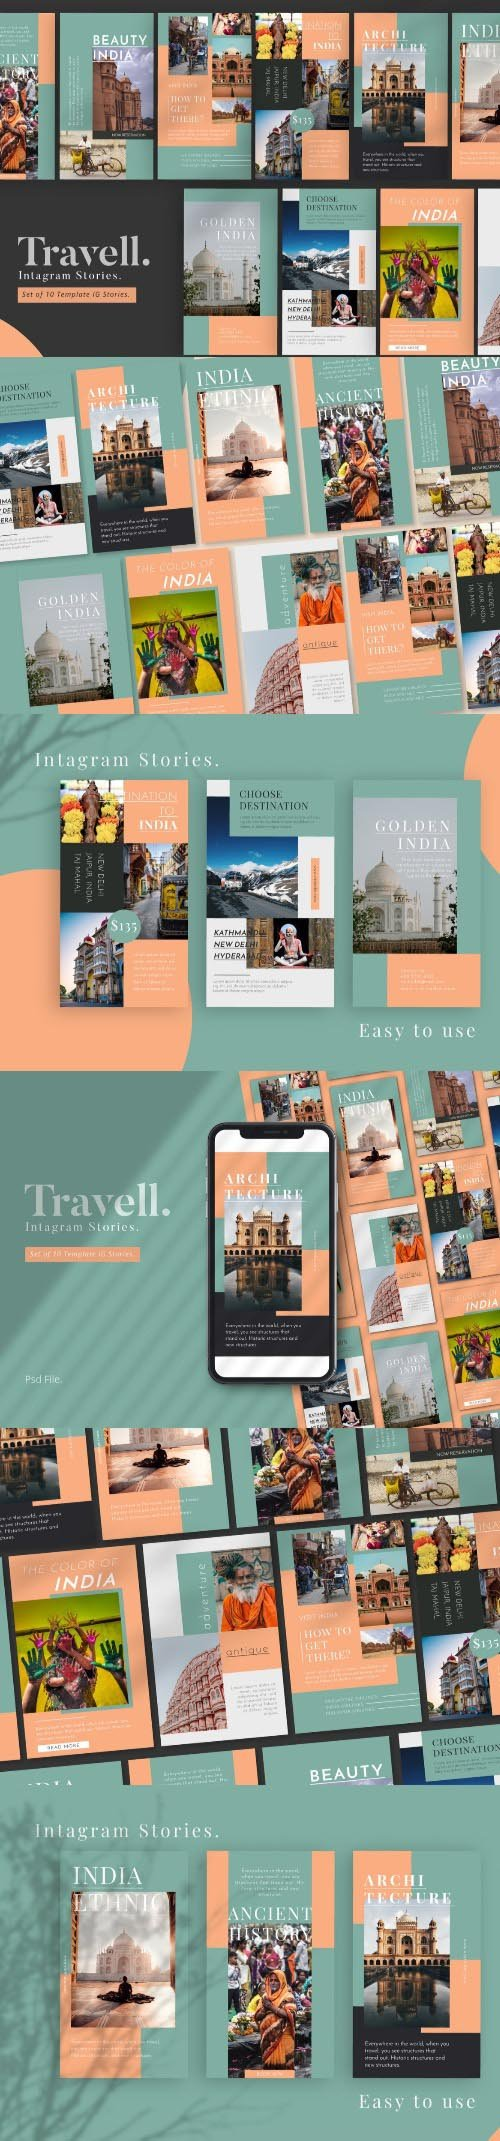 Travel Promotion Instagram Stories Template